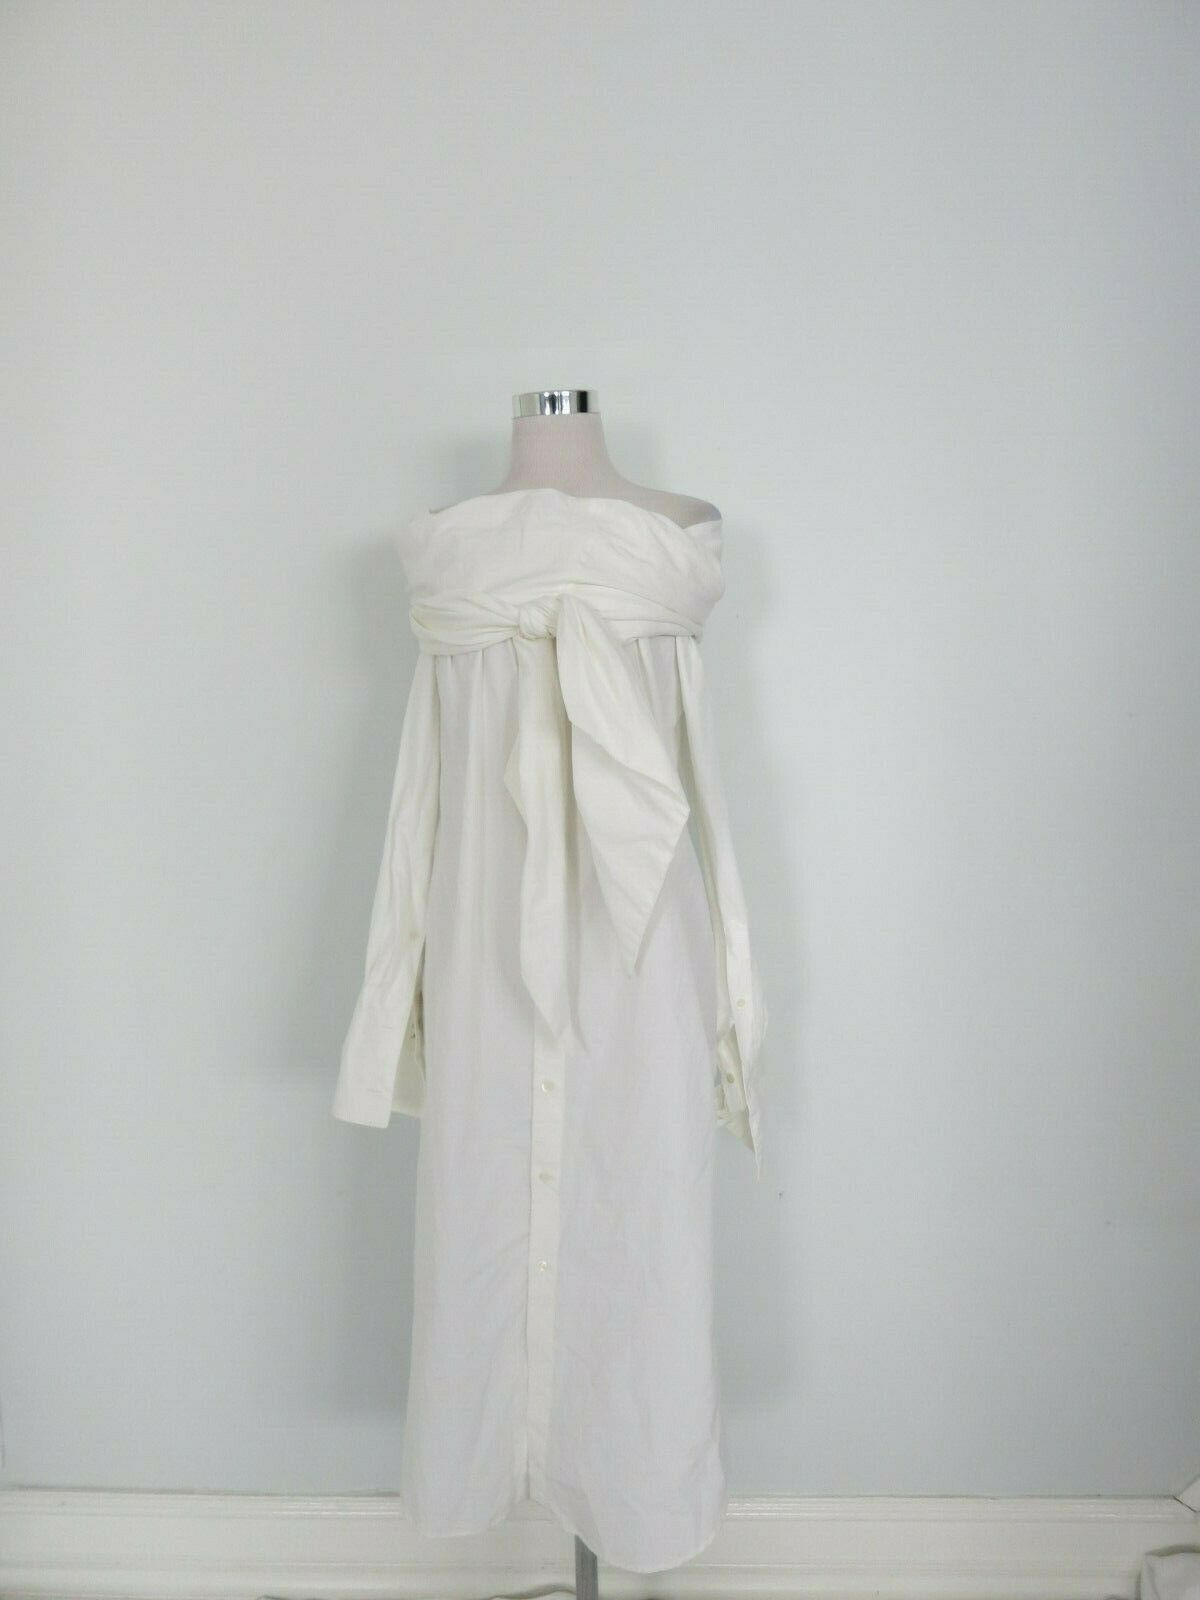 DRIES VAN NOTEN white off-shoulder dress size 34 US 0 0 0 fa3e35